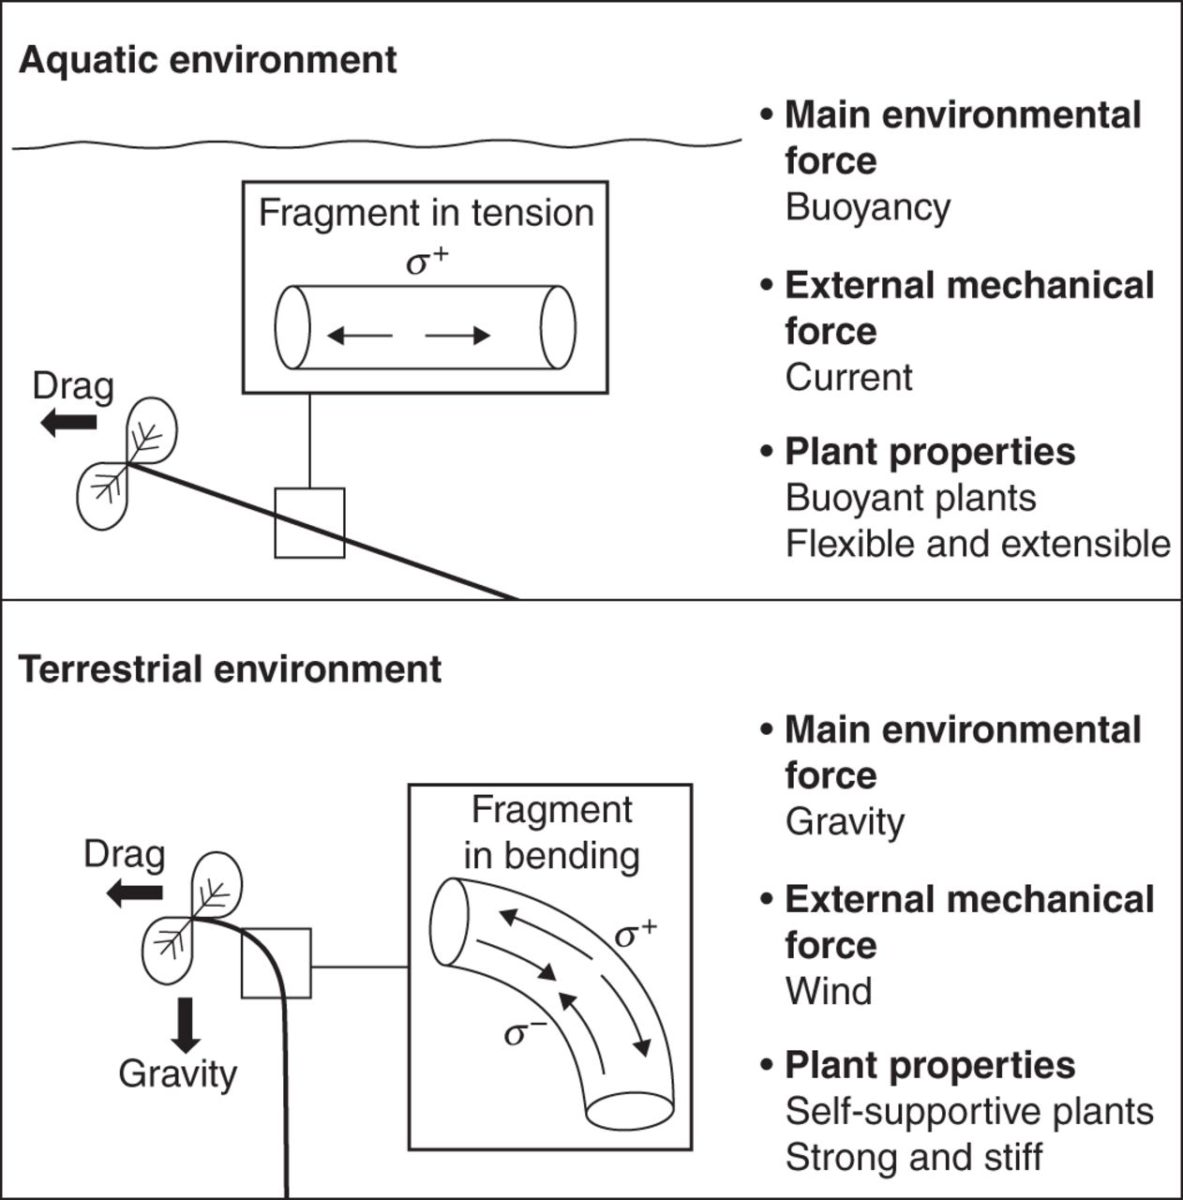 Force Current Flow: Do Changes In Water Levels In Wetlands Give Plants A